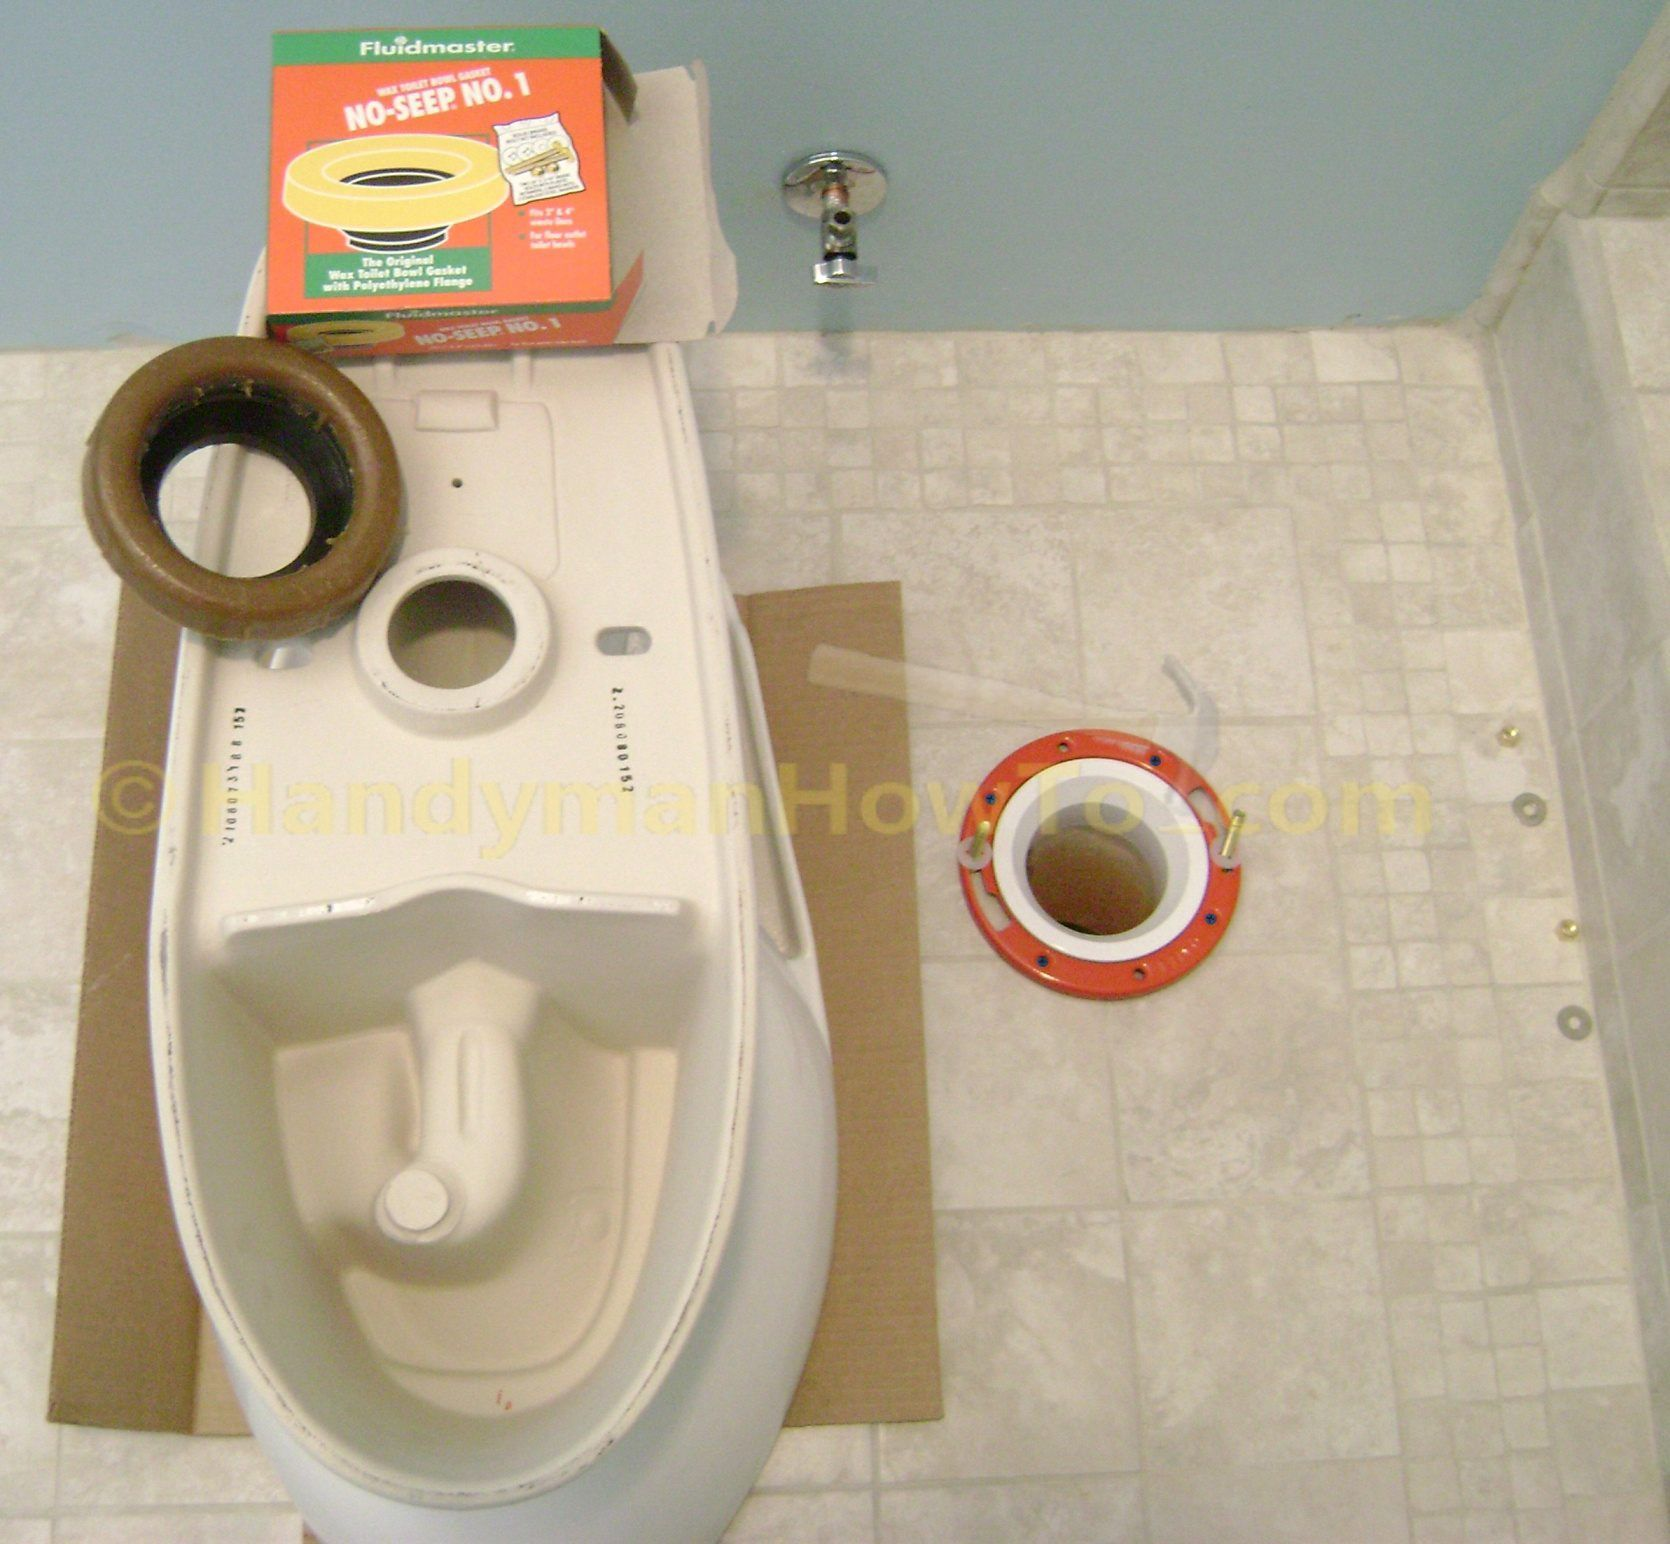 How To Finish A Basement Bathroom Install The Toilet Basement